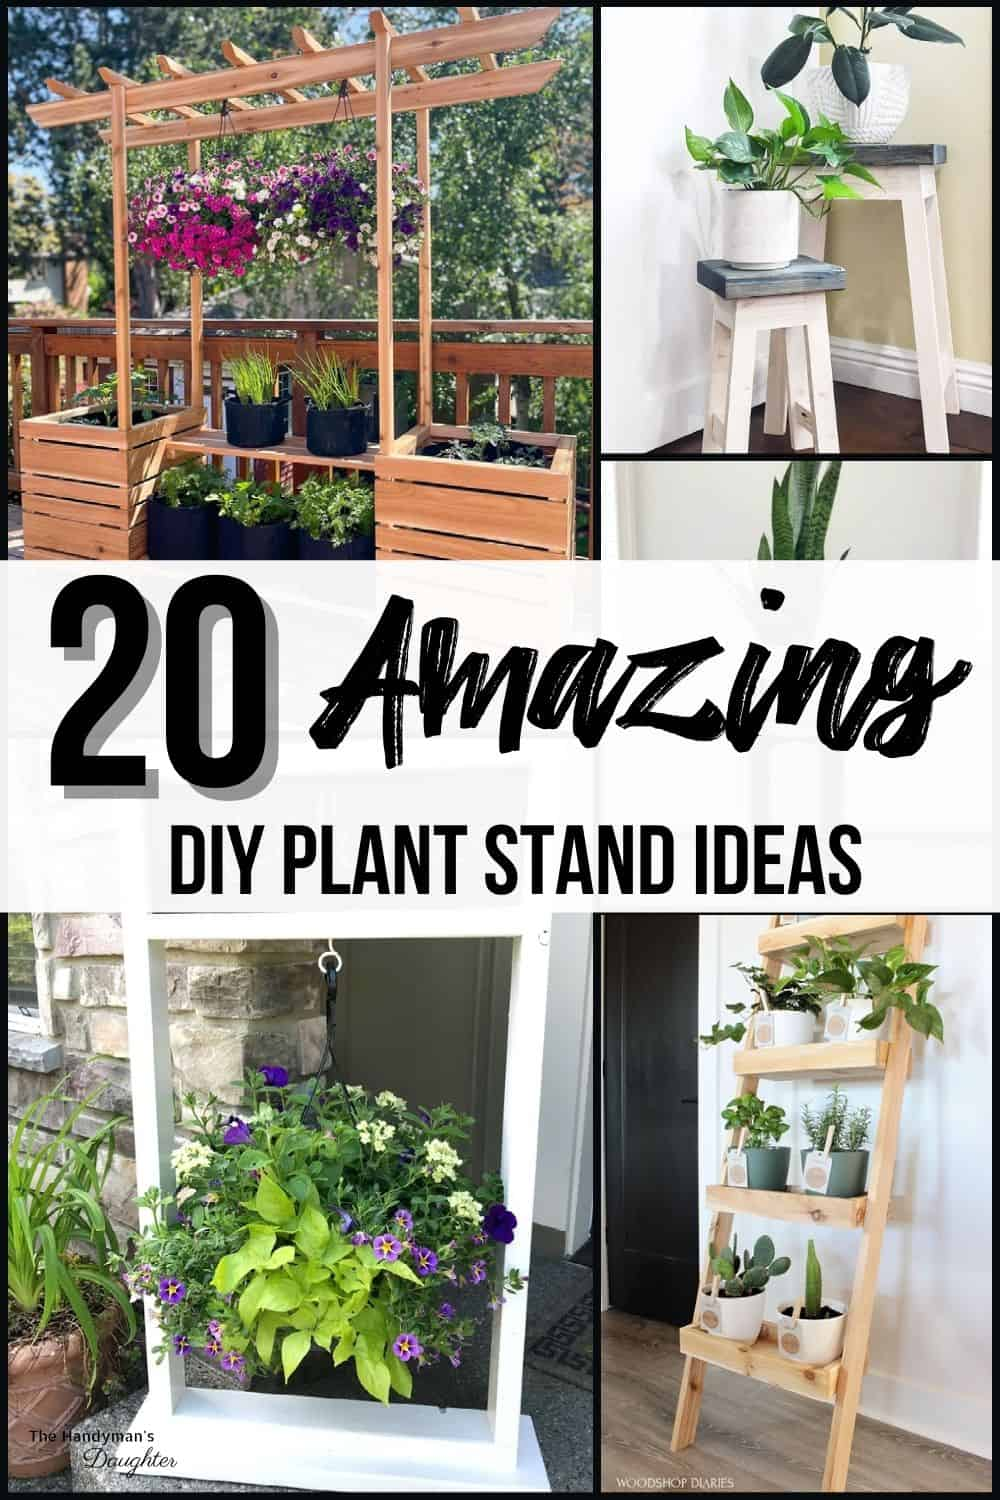 DIY plant stand ideas collage